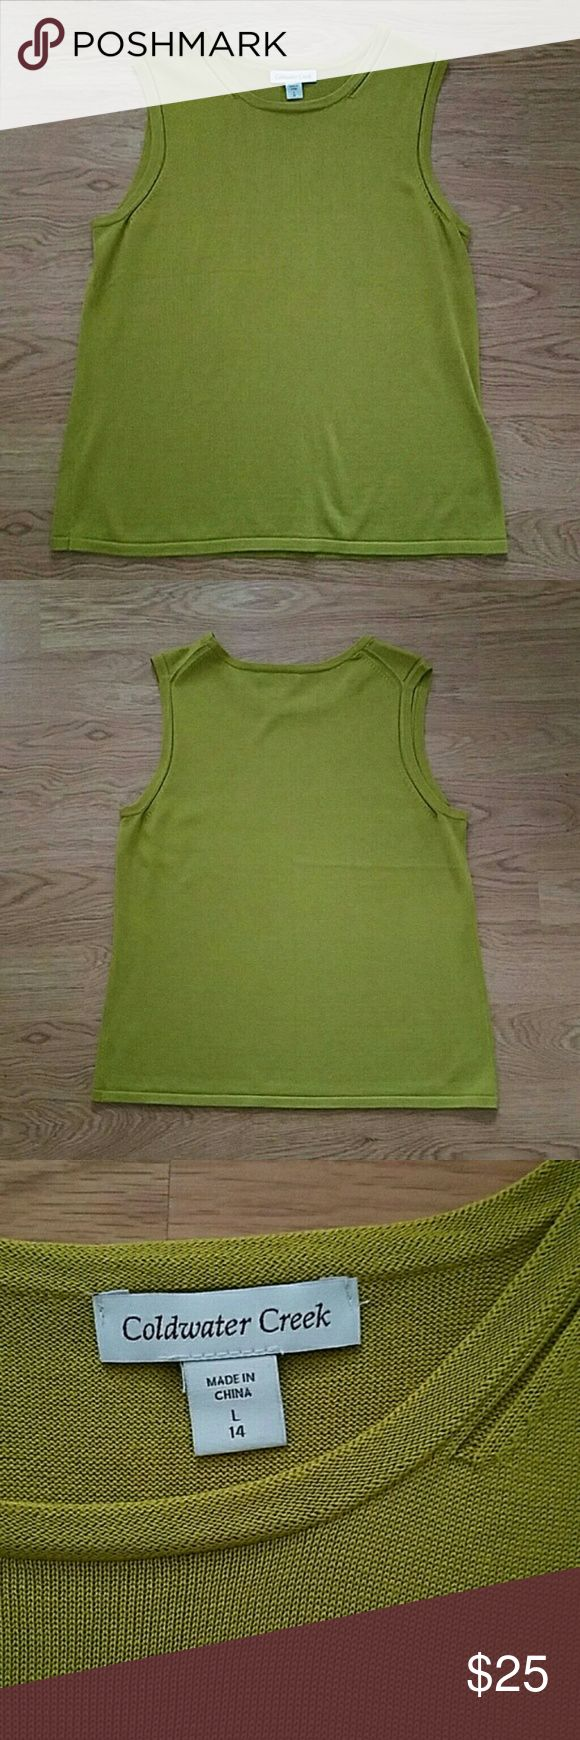 Large, Sleeveless Silk Blouse, Coldwater Creek Flawless & Like New! Chartreuse shell made of 70% silk. Size Large (14) by Coldwater Creek. Coldwater Creek Tops Tank Tops